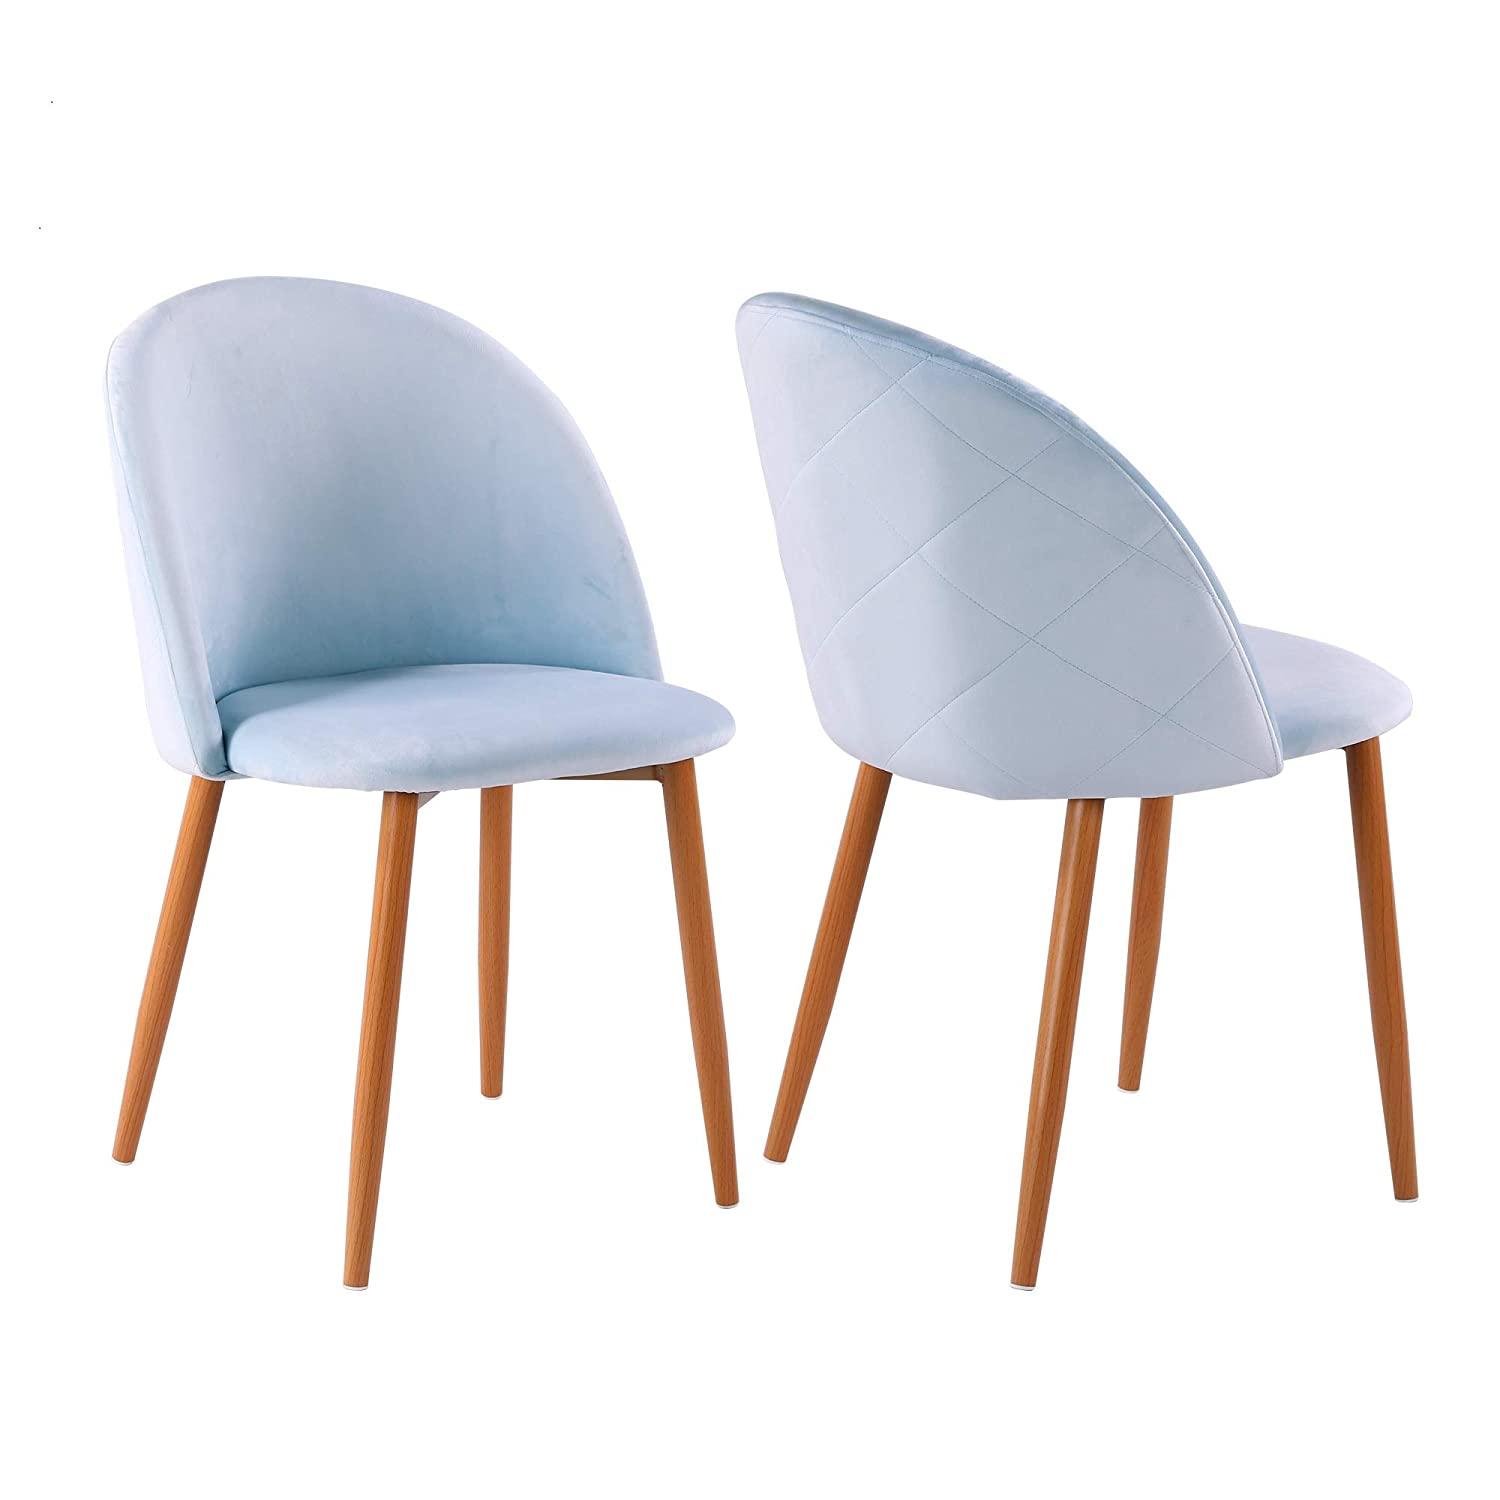 Fayean dining chair soft velvet cushion chair with sturdy metal legs for home kitchen living room set of 2aqua amazon co uk kitchen home